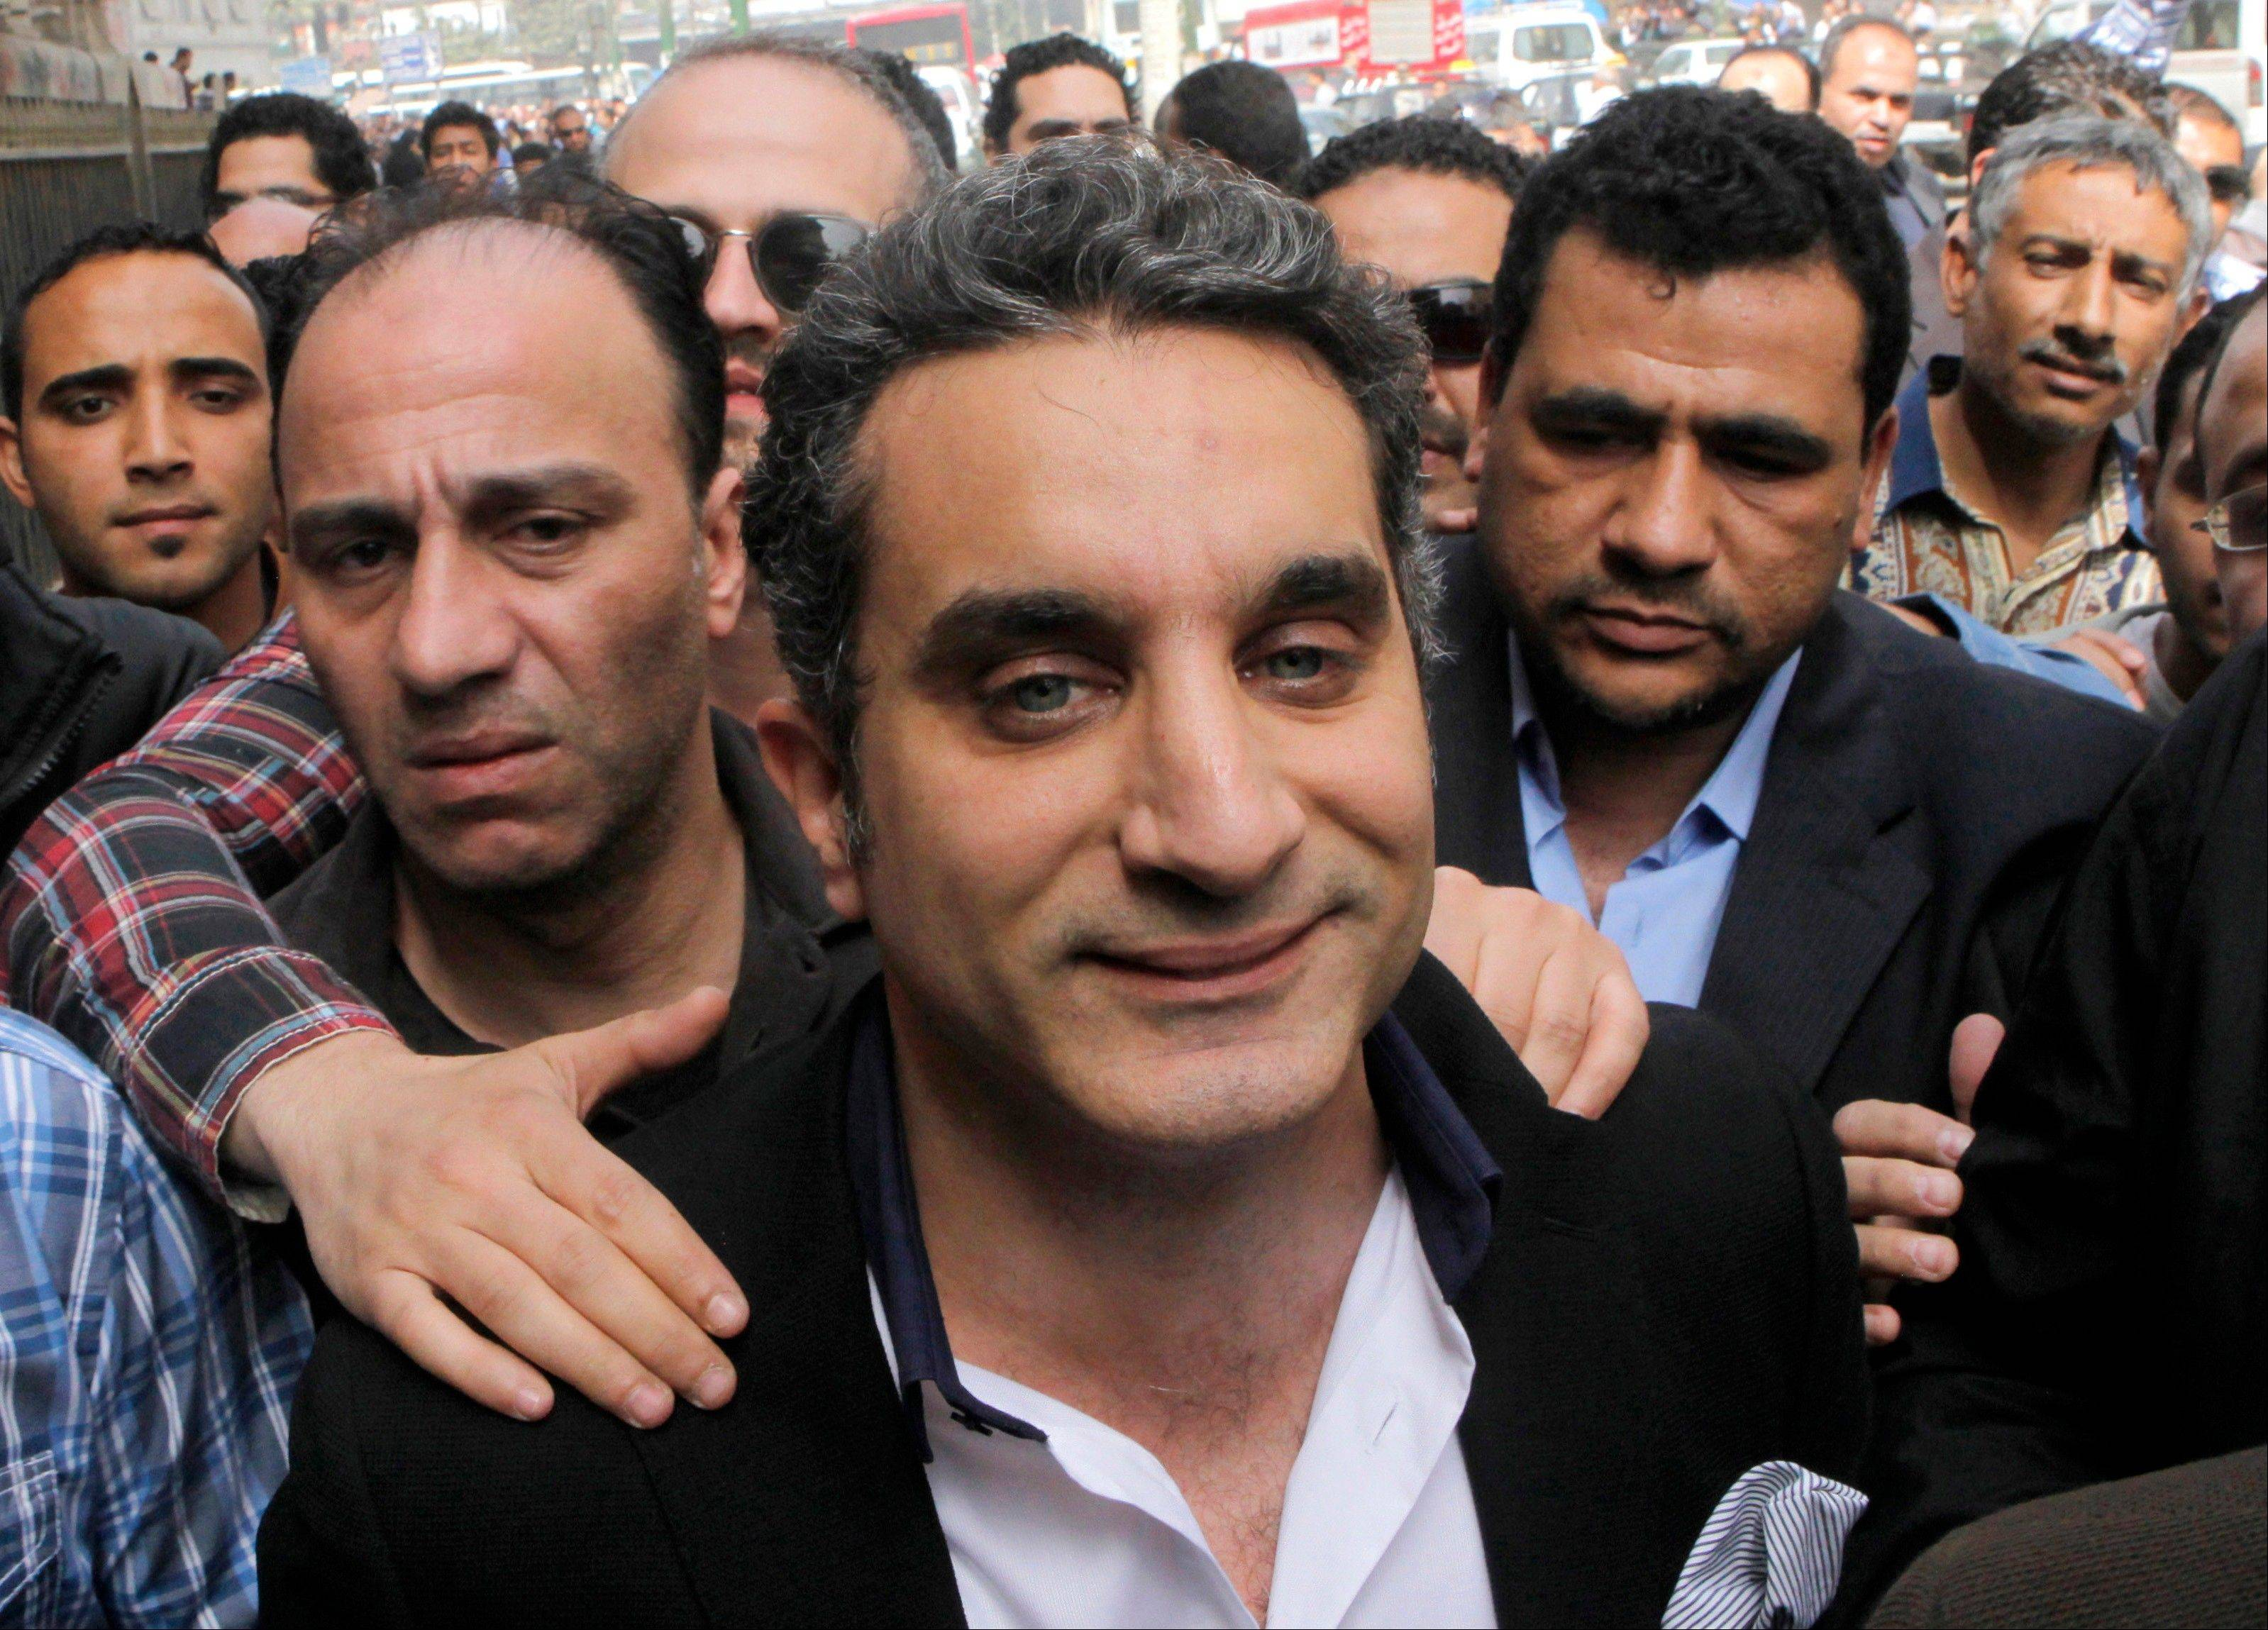 Egyptian television satirist Bassem Youssef has come to be known as Egypt's Jon Stewart.